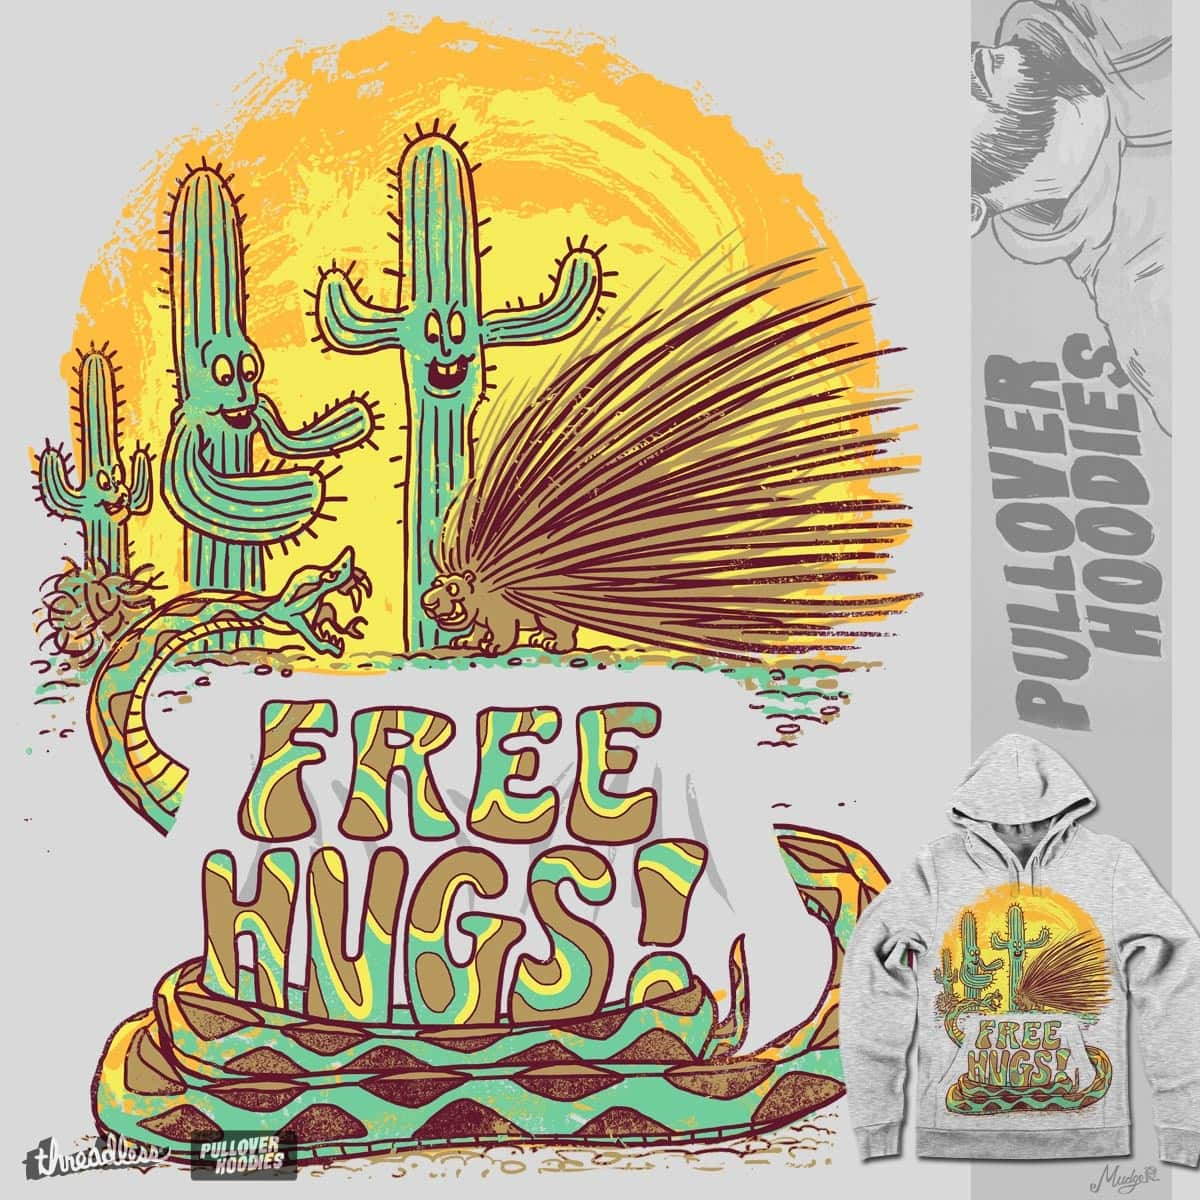 Wanting For  a Free Hug by MudgeStudios on Threadless